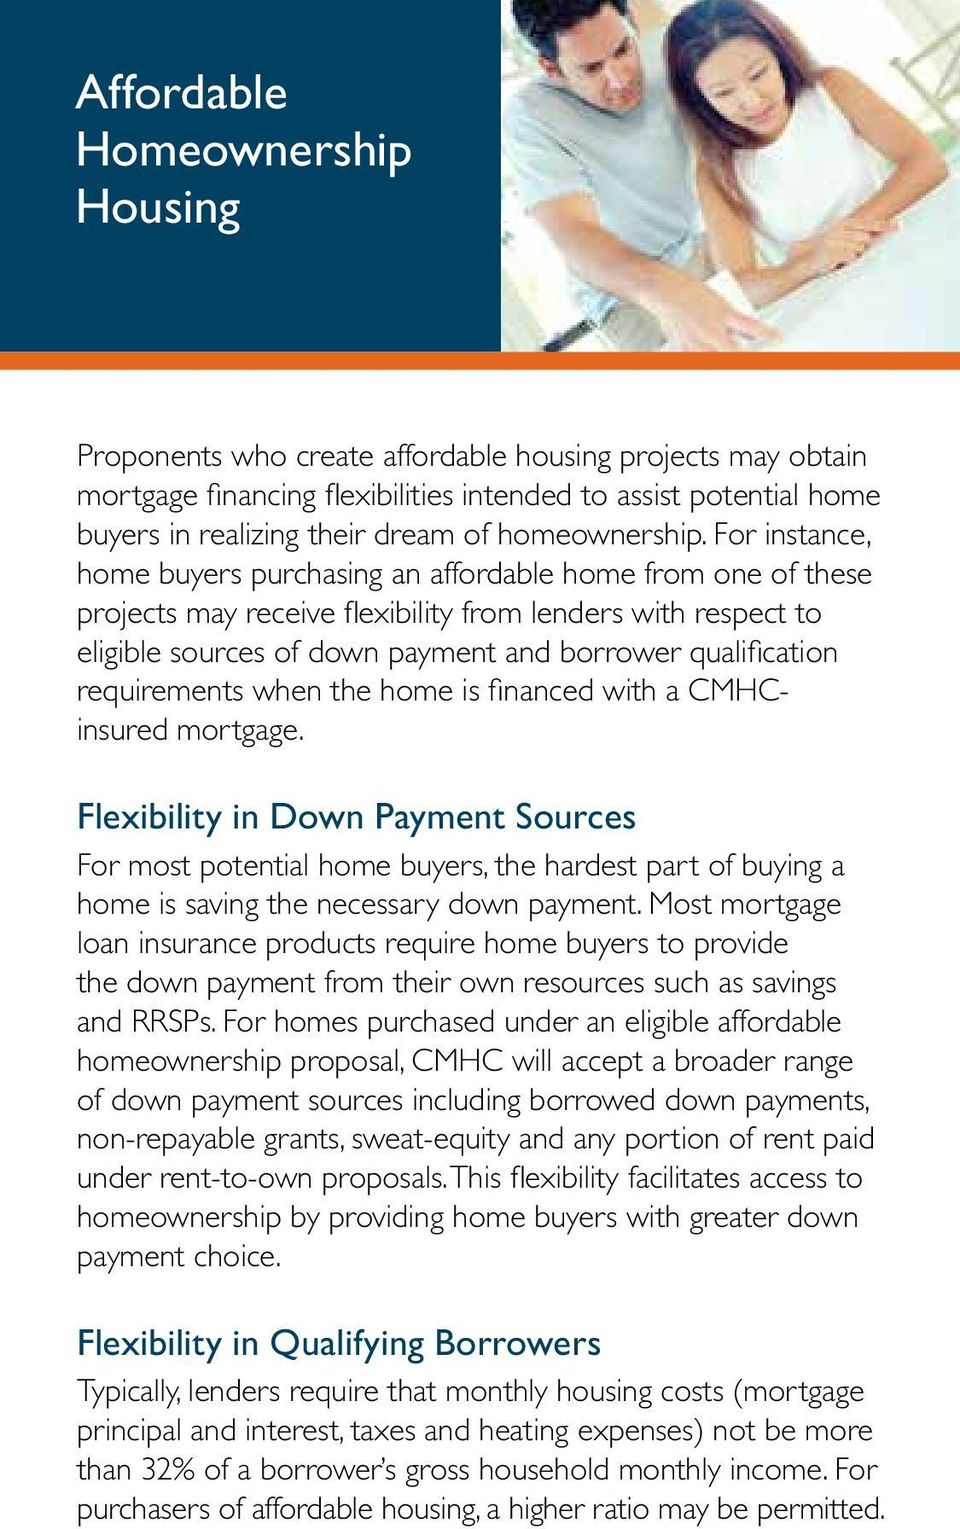 For instance, home buyers purchasing an affordable home from one of these projects may receive flexibility from lenders with respect to eligible sources of down payment and borrower qualification